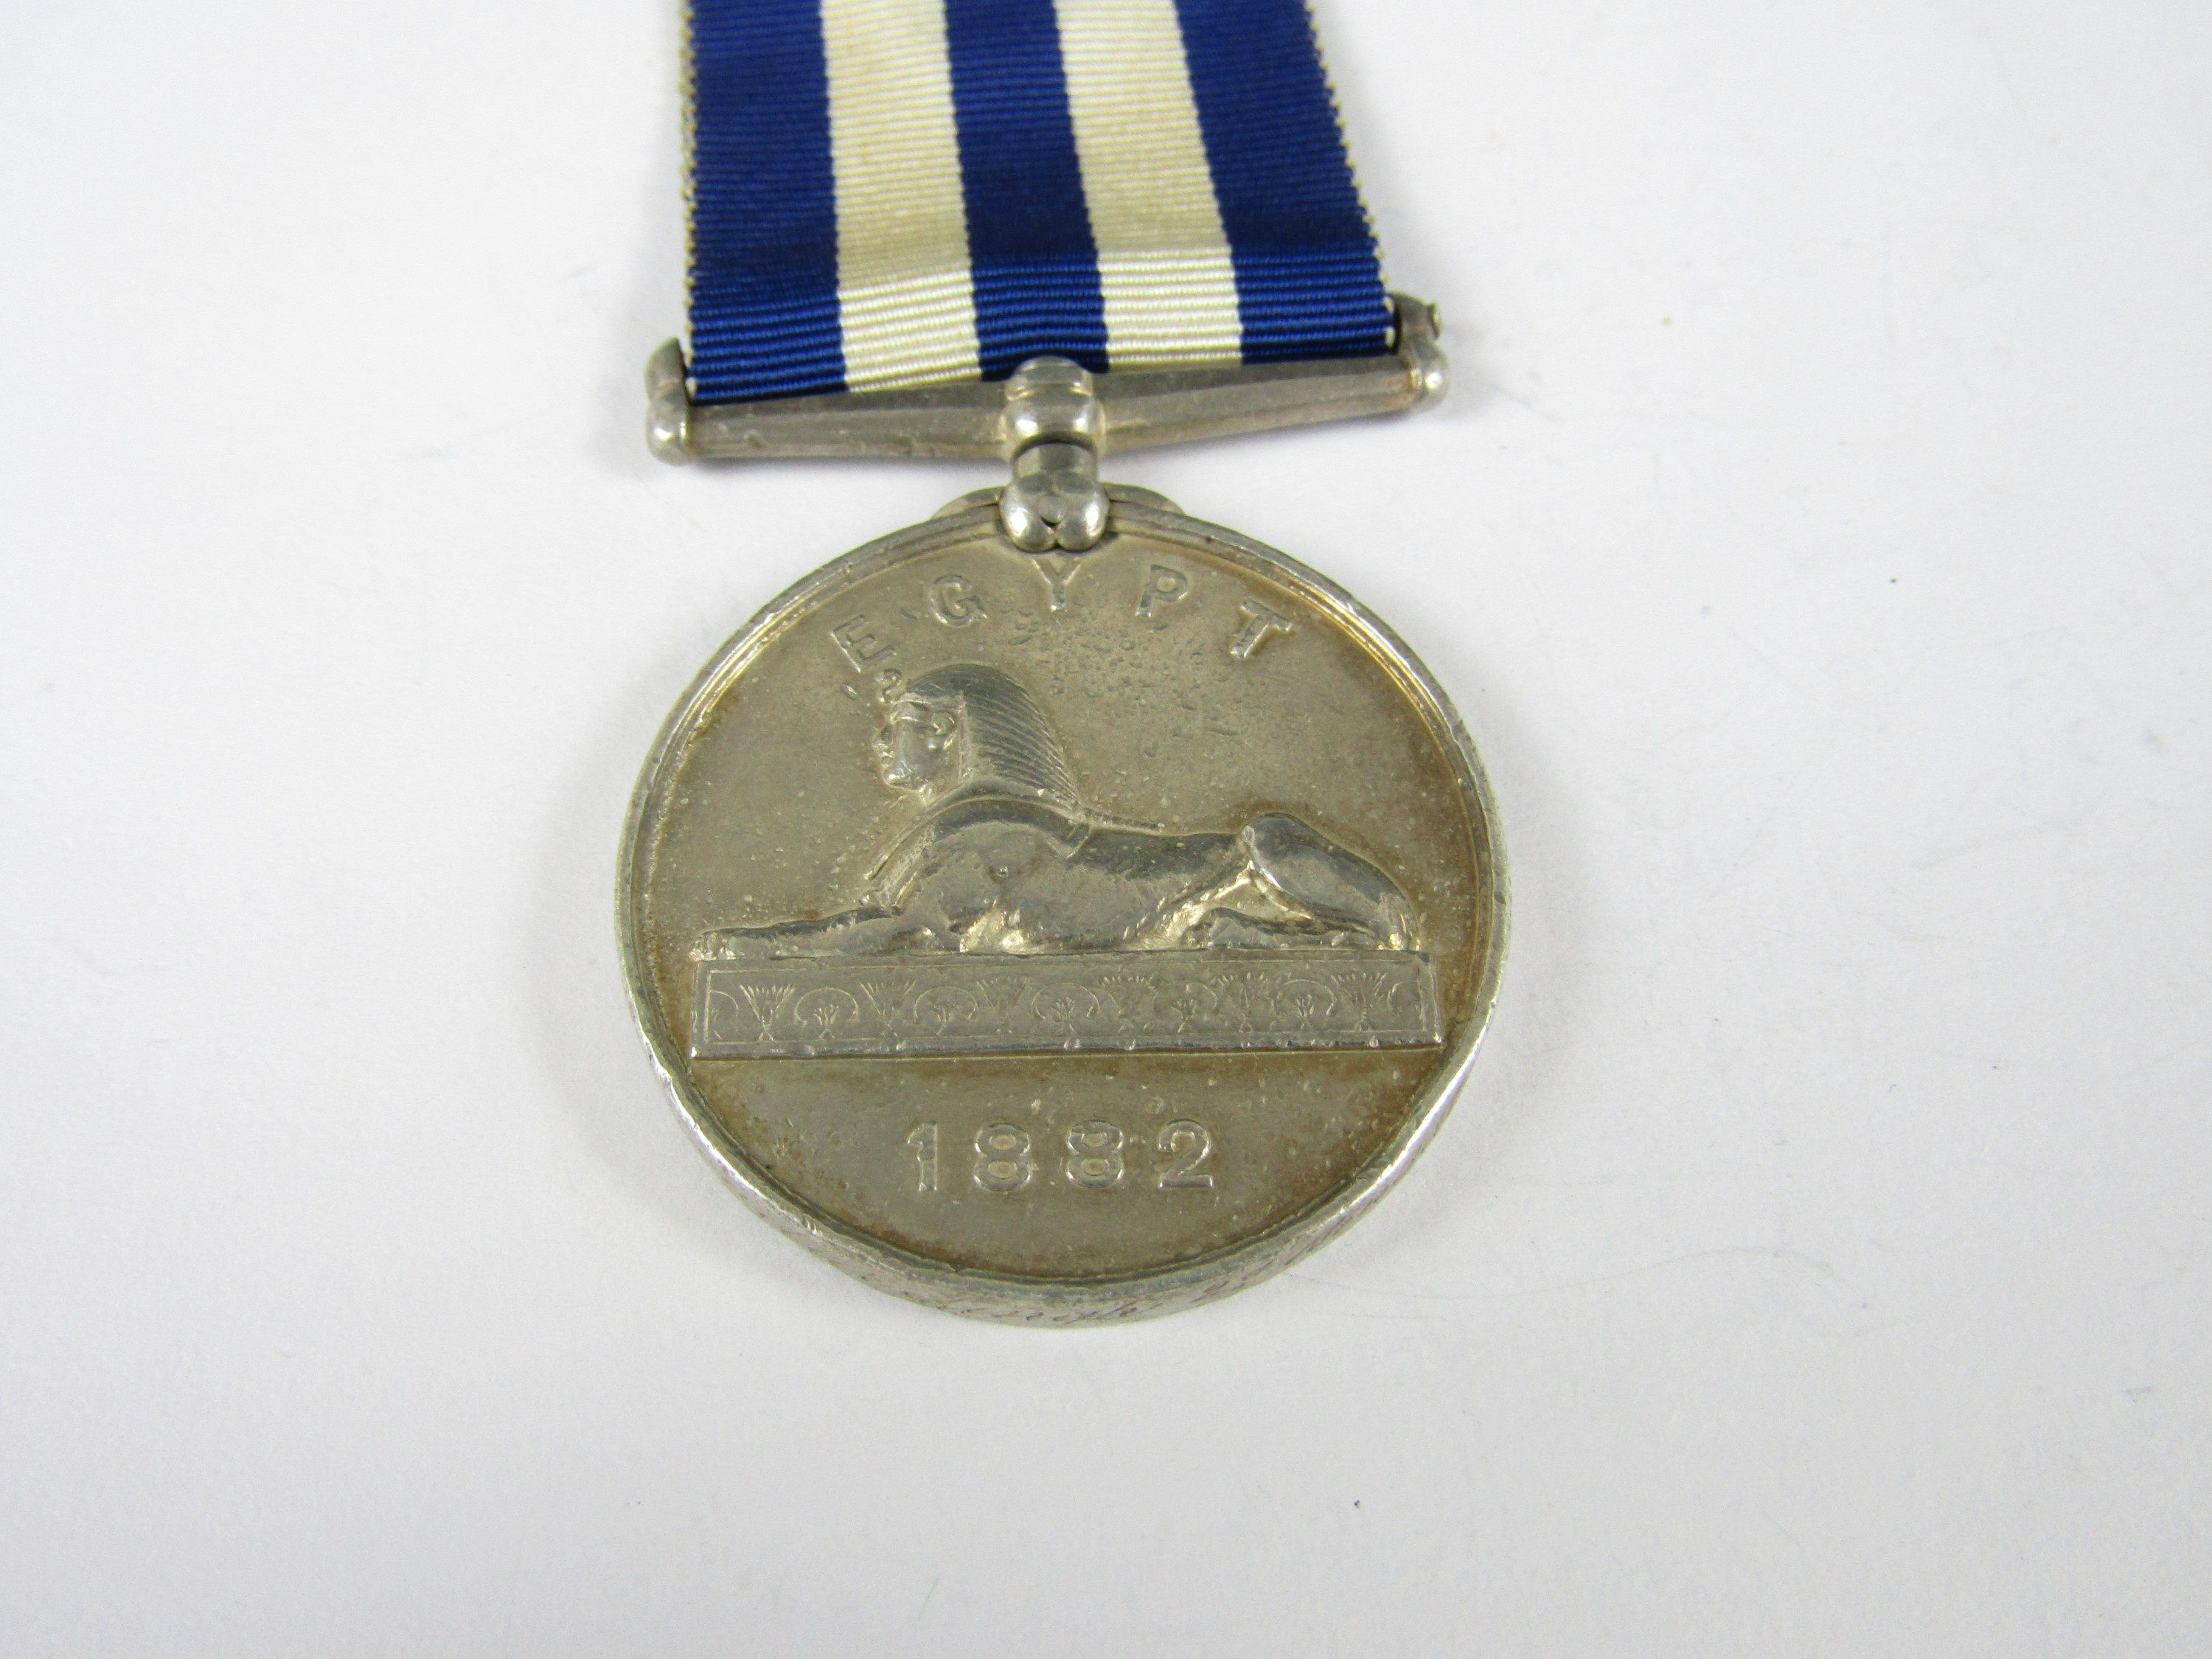 Lot 59 - An 1882 Egypt Medal to *** Prondur Singh, 2nd Bengal Cavry